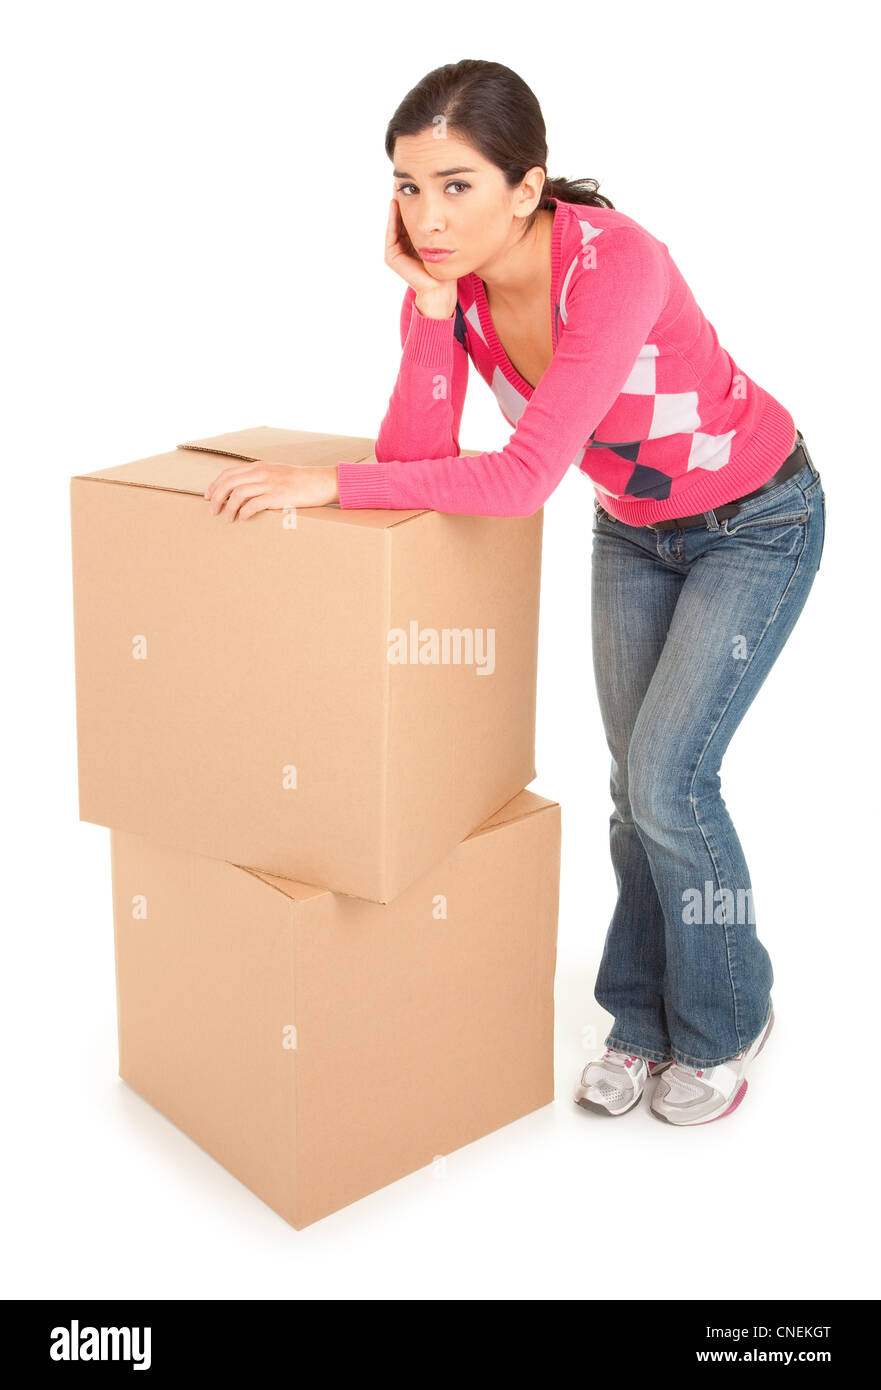 A tired looking woman is leaning on cardboard boxes. Stock Photo